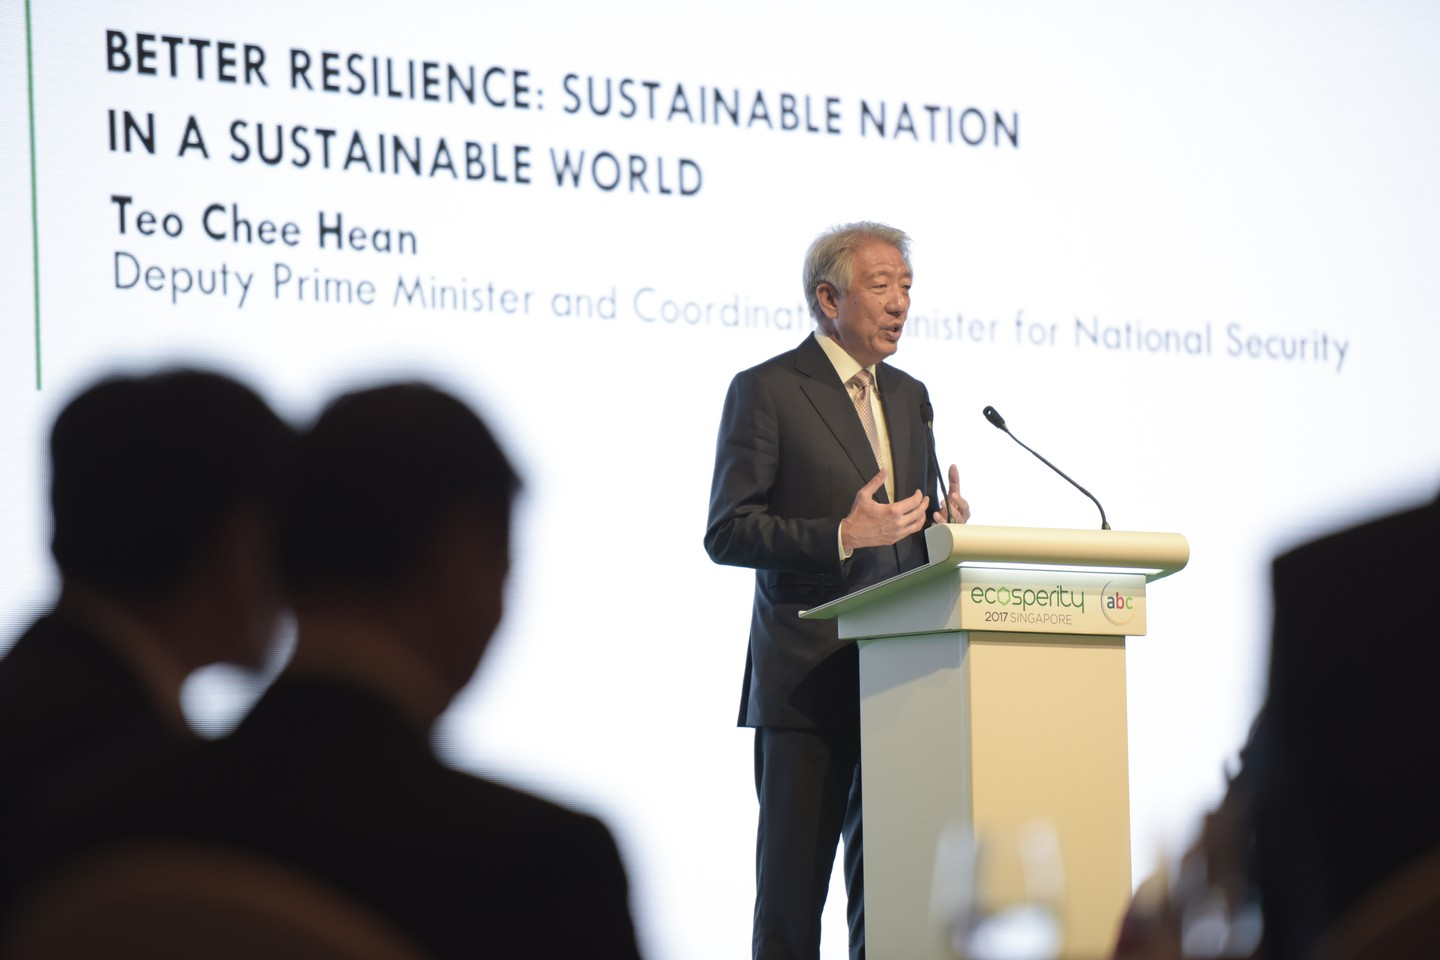 Teo Chee Hean, Singapore's deputy prime minister and coordinating minister for natural security, shares Singapore's sustainable development story at the Ecosperity 2017 conference, organised by Temasek. Image: Temasek